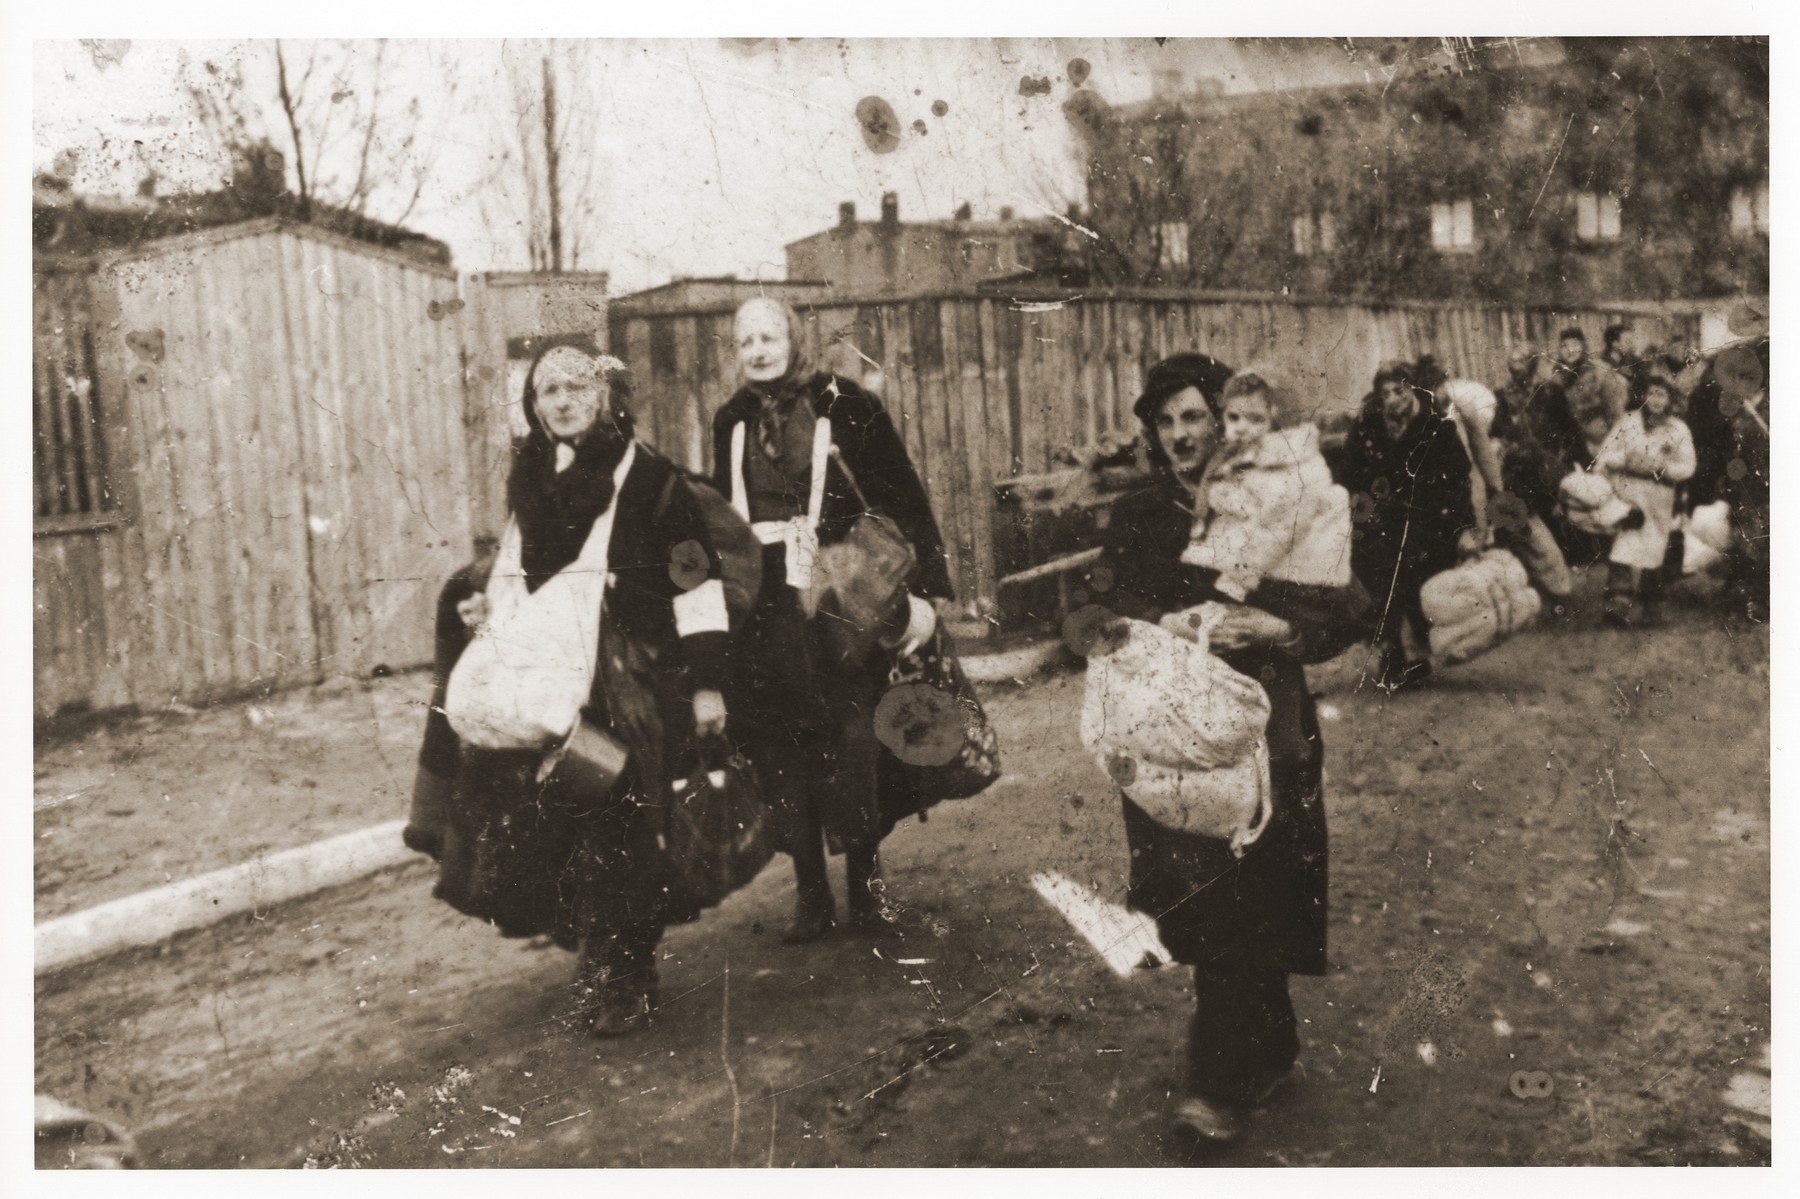 Elderly women carrying young children and bundles of personal belongings trudge along a street in the Lodz ghetto toward the assembly point for deportations to Chelmno.